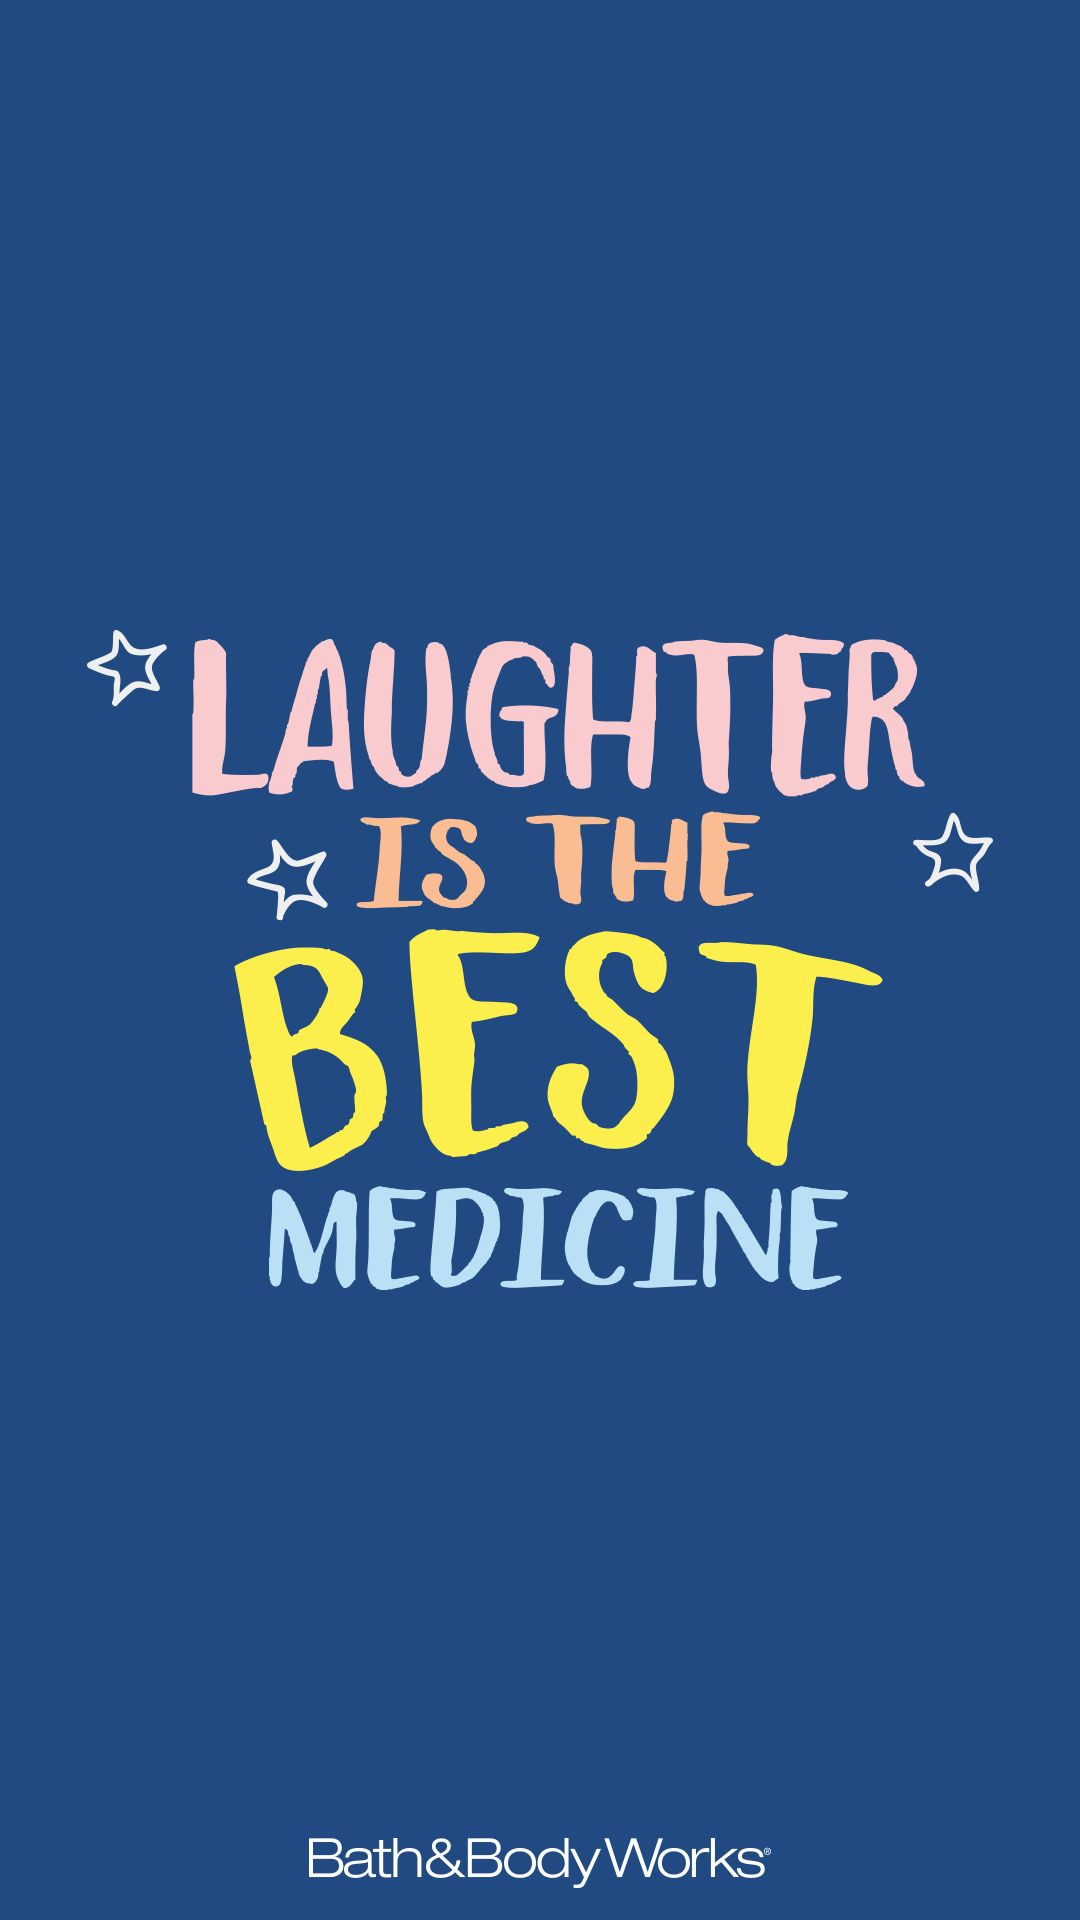 Laughter Is The Best Medicine Cell Phone Wallpaper Background